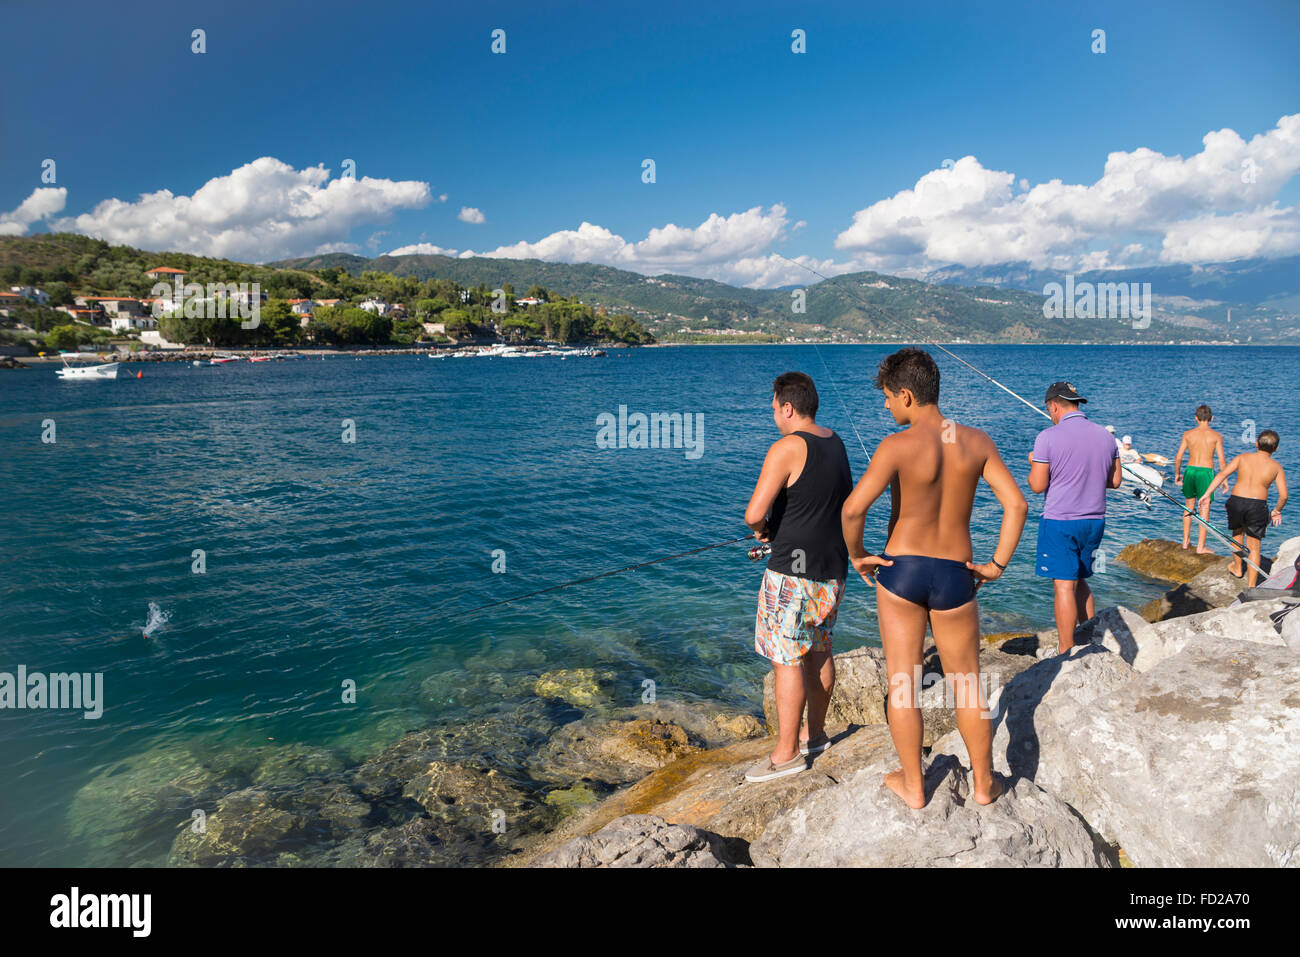 Anglers in the port of Scario in the Gulf of Policastro on a sunny summer day, Cilento, Italy - Stock Image